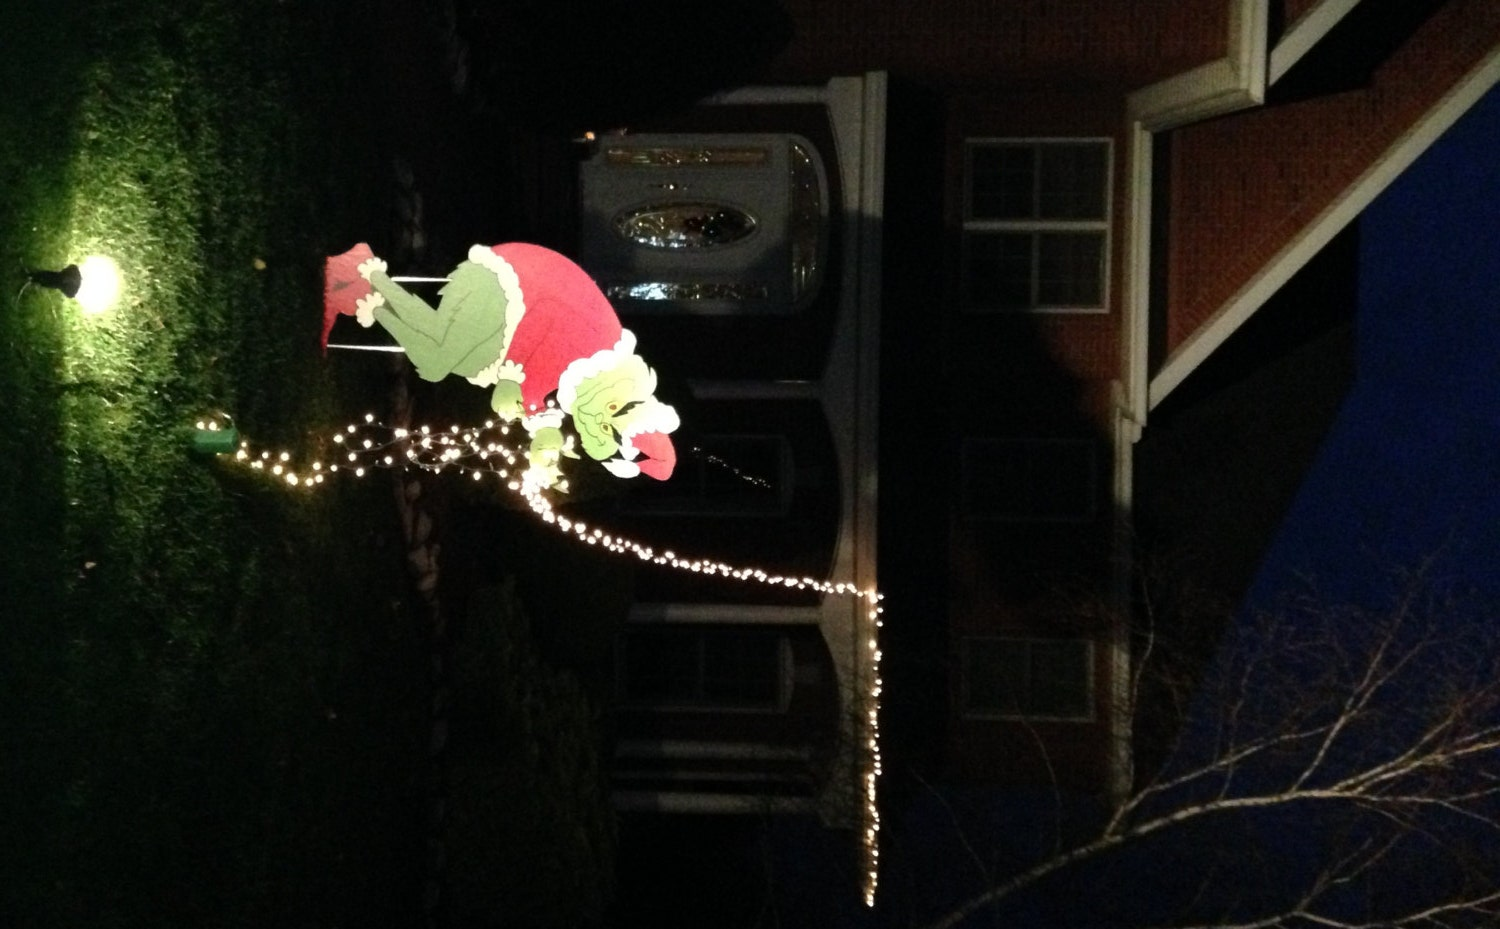 Grinch stealing lights christmas decorations - Previous Item Created With Sketch Next Item Created With Sketch